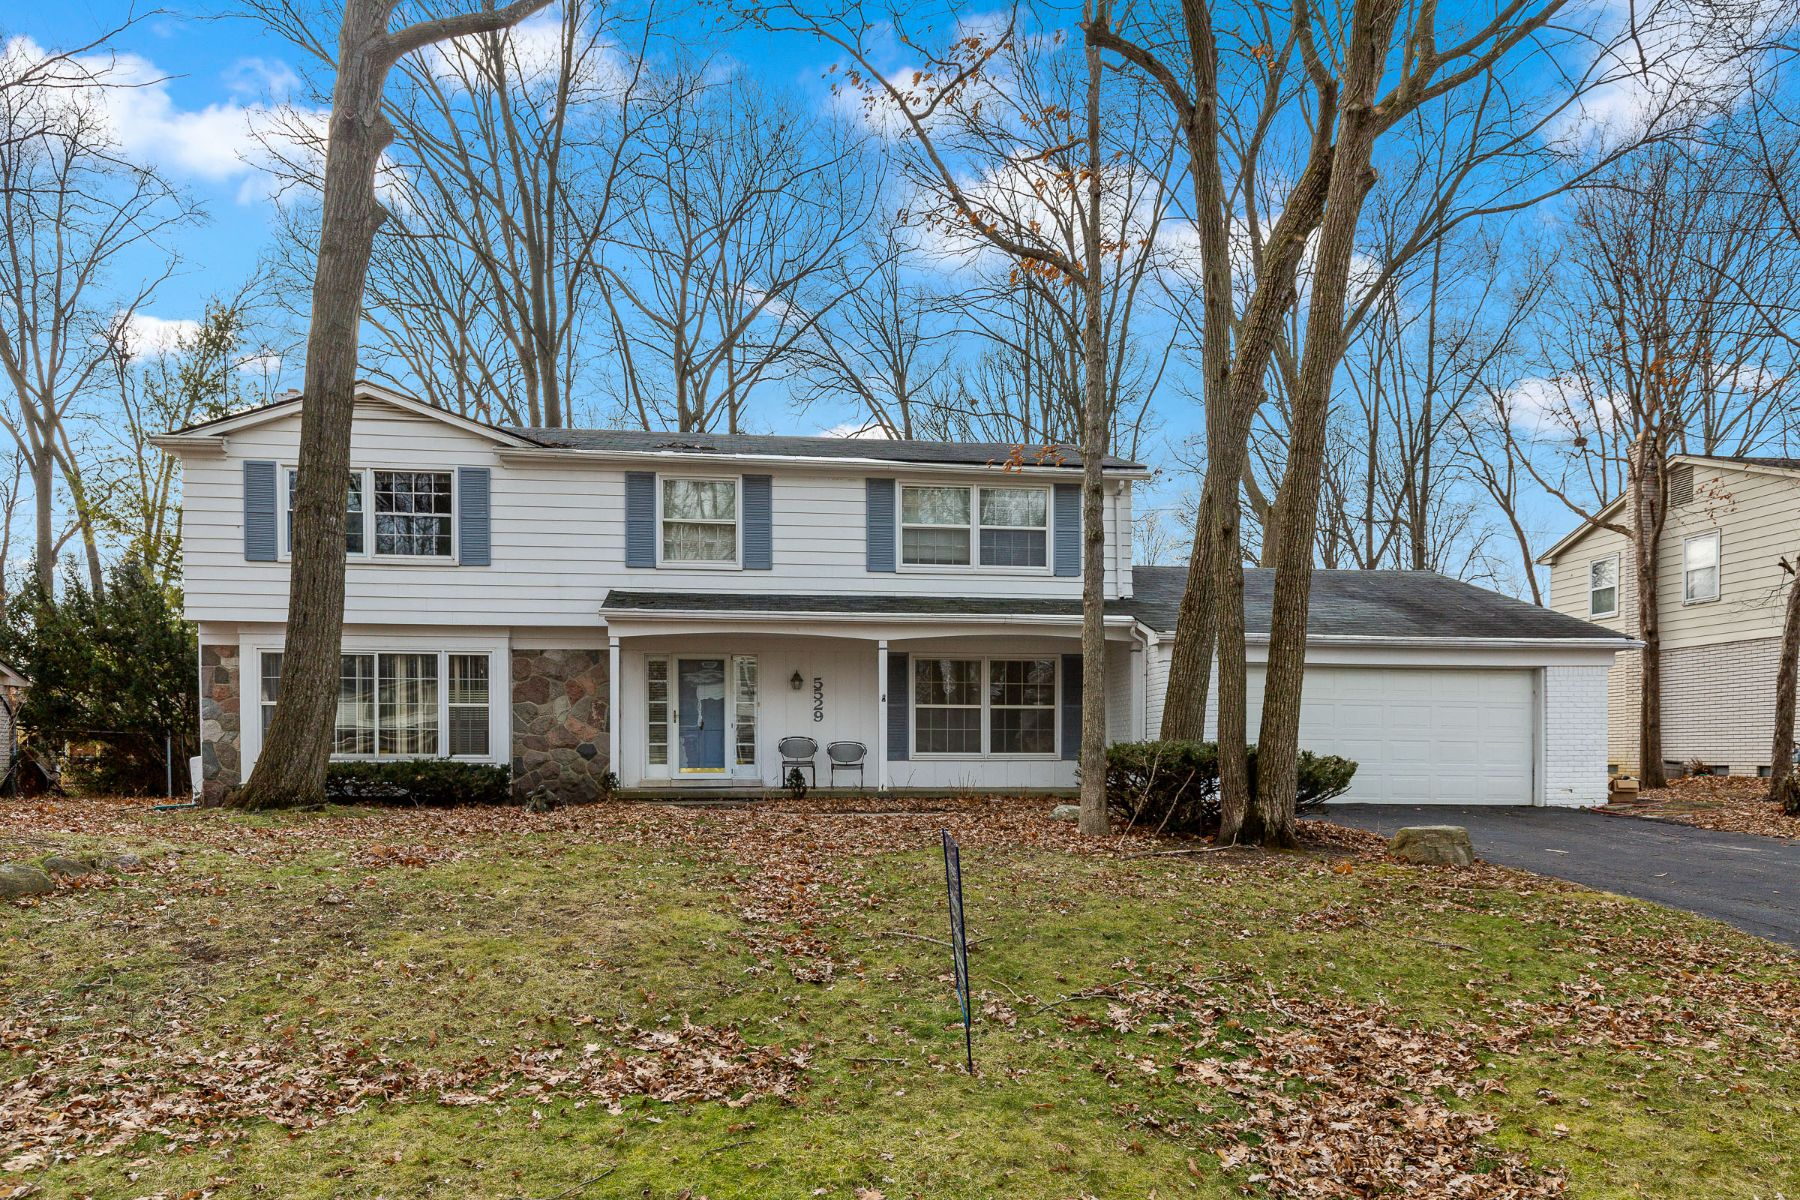 Single Family Homes for Sale at West Bloomfield 5529 Normanhurst West Bloomfield, Michigan 48322 United States